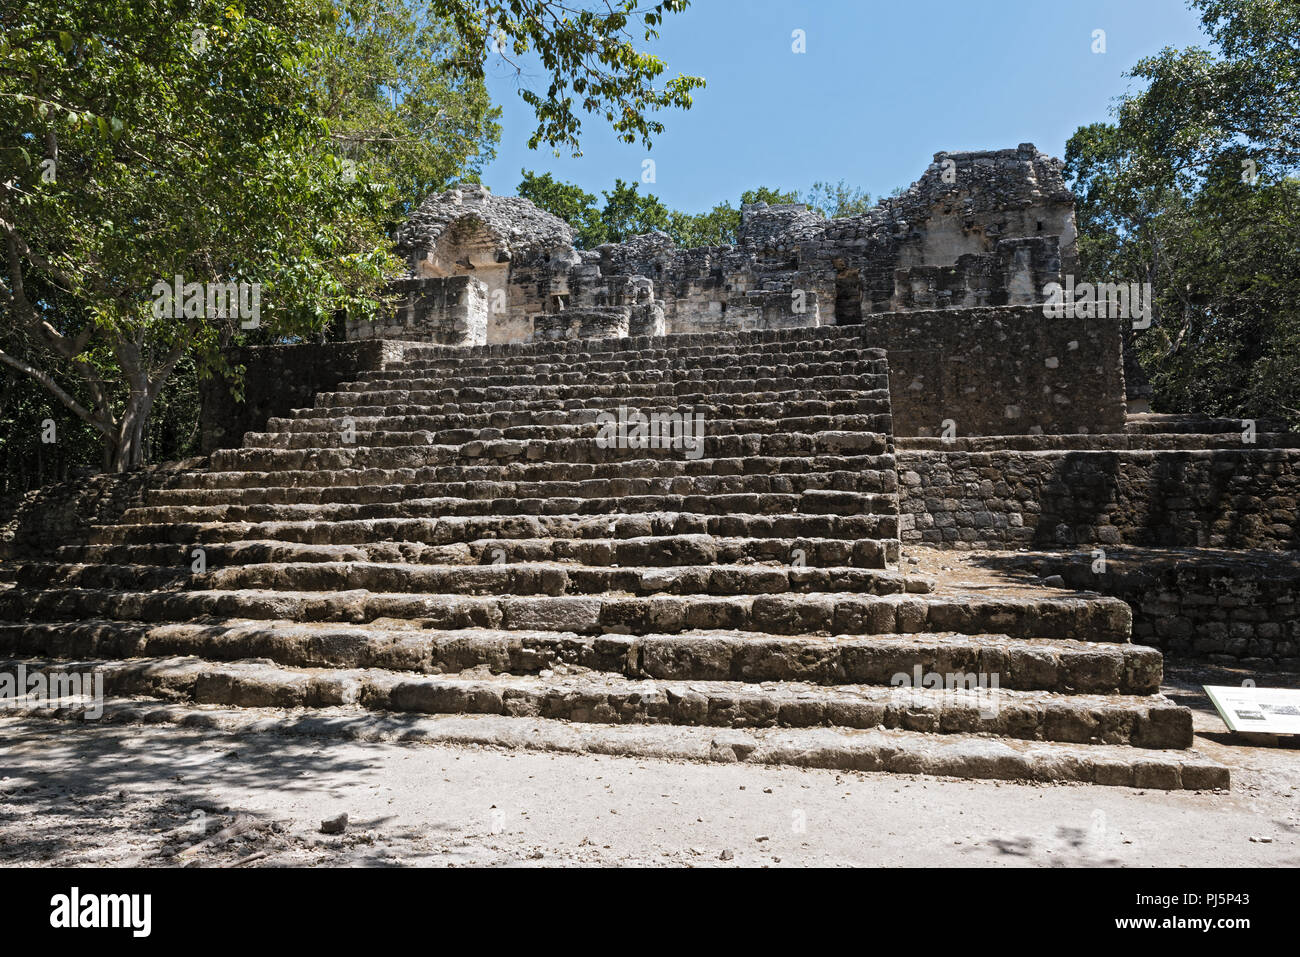 The ruins of the ancient Mayan city of calakmul, campeche, Mexico. - Stock Image